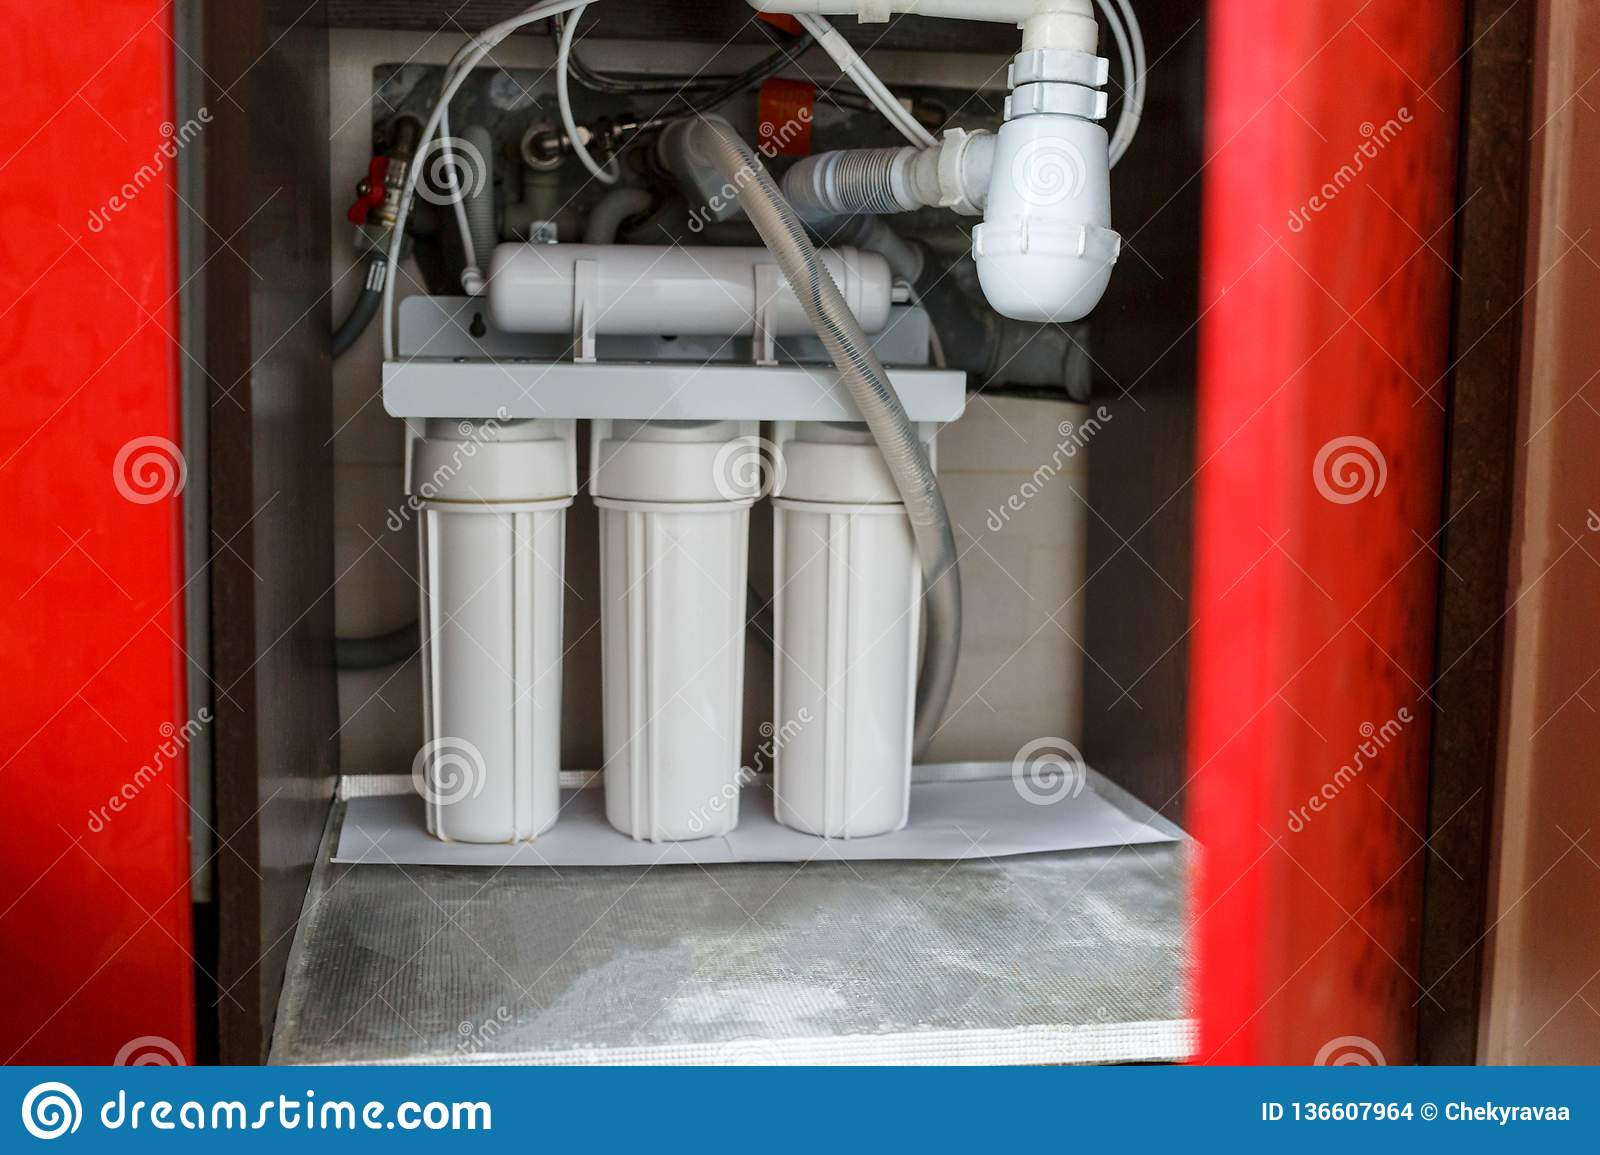 Reverse Osmosis Water Purification System At Home. Installation Of on clear glass sink, clear kitchen counter, clear kitchen cabinets, clear bathroom sink,